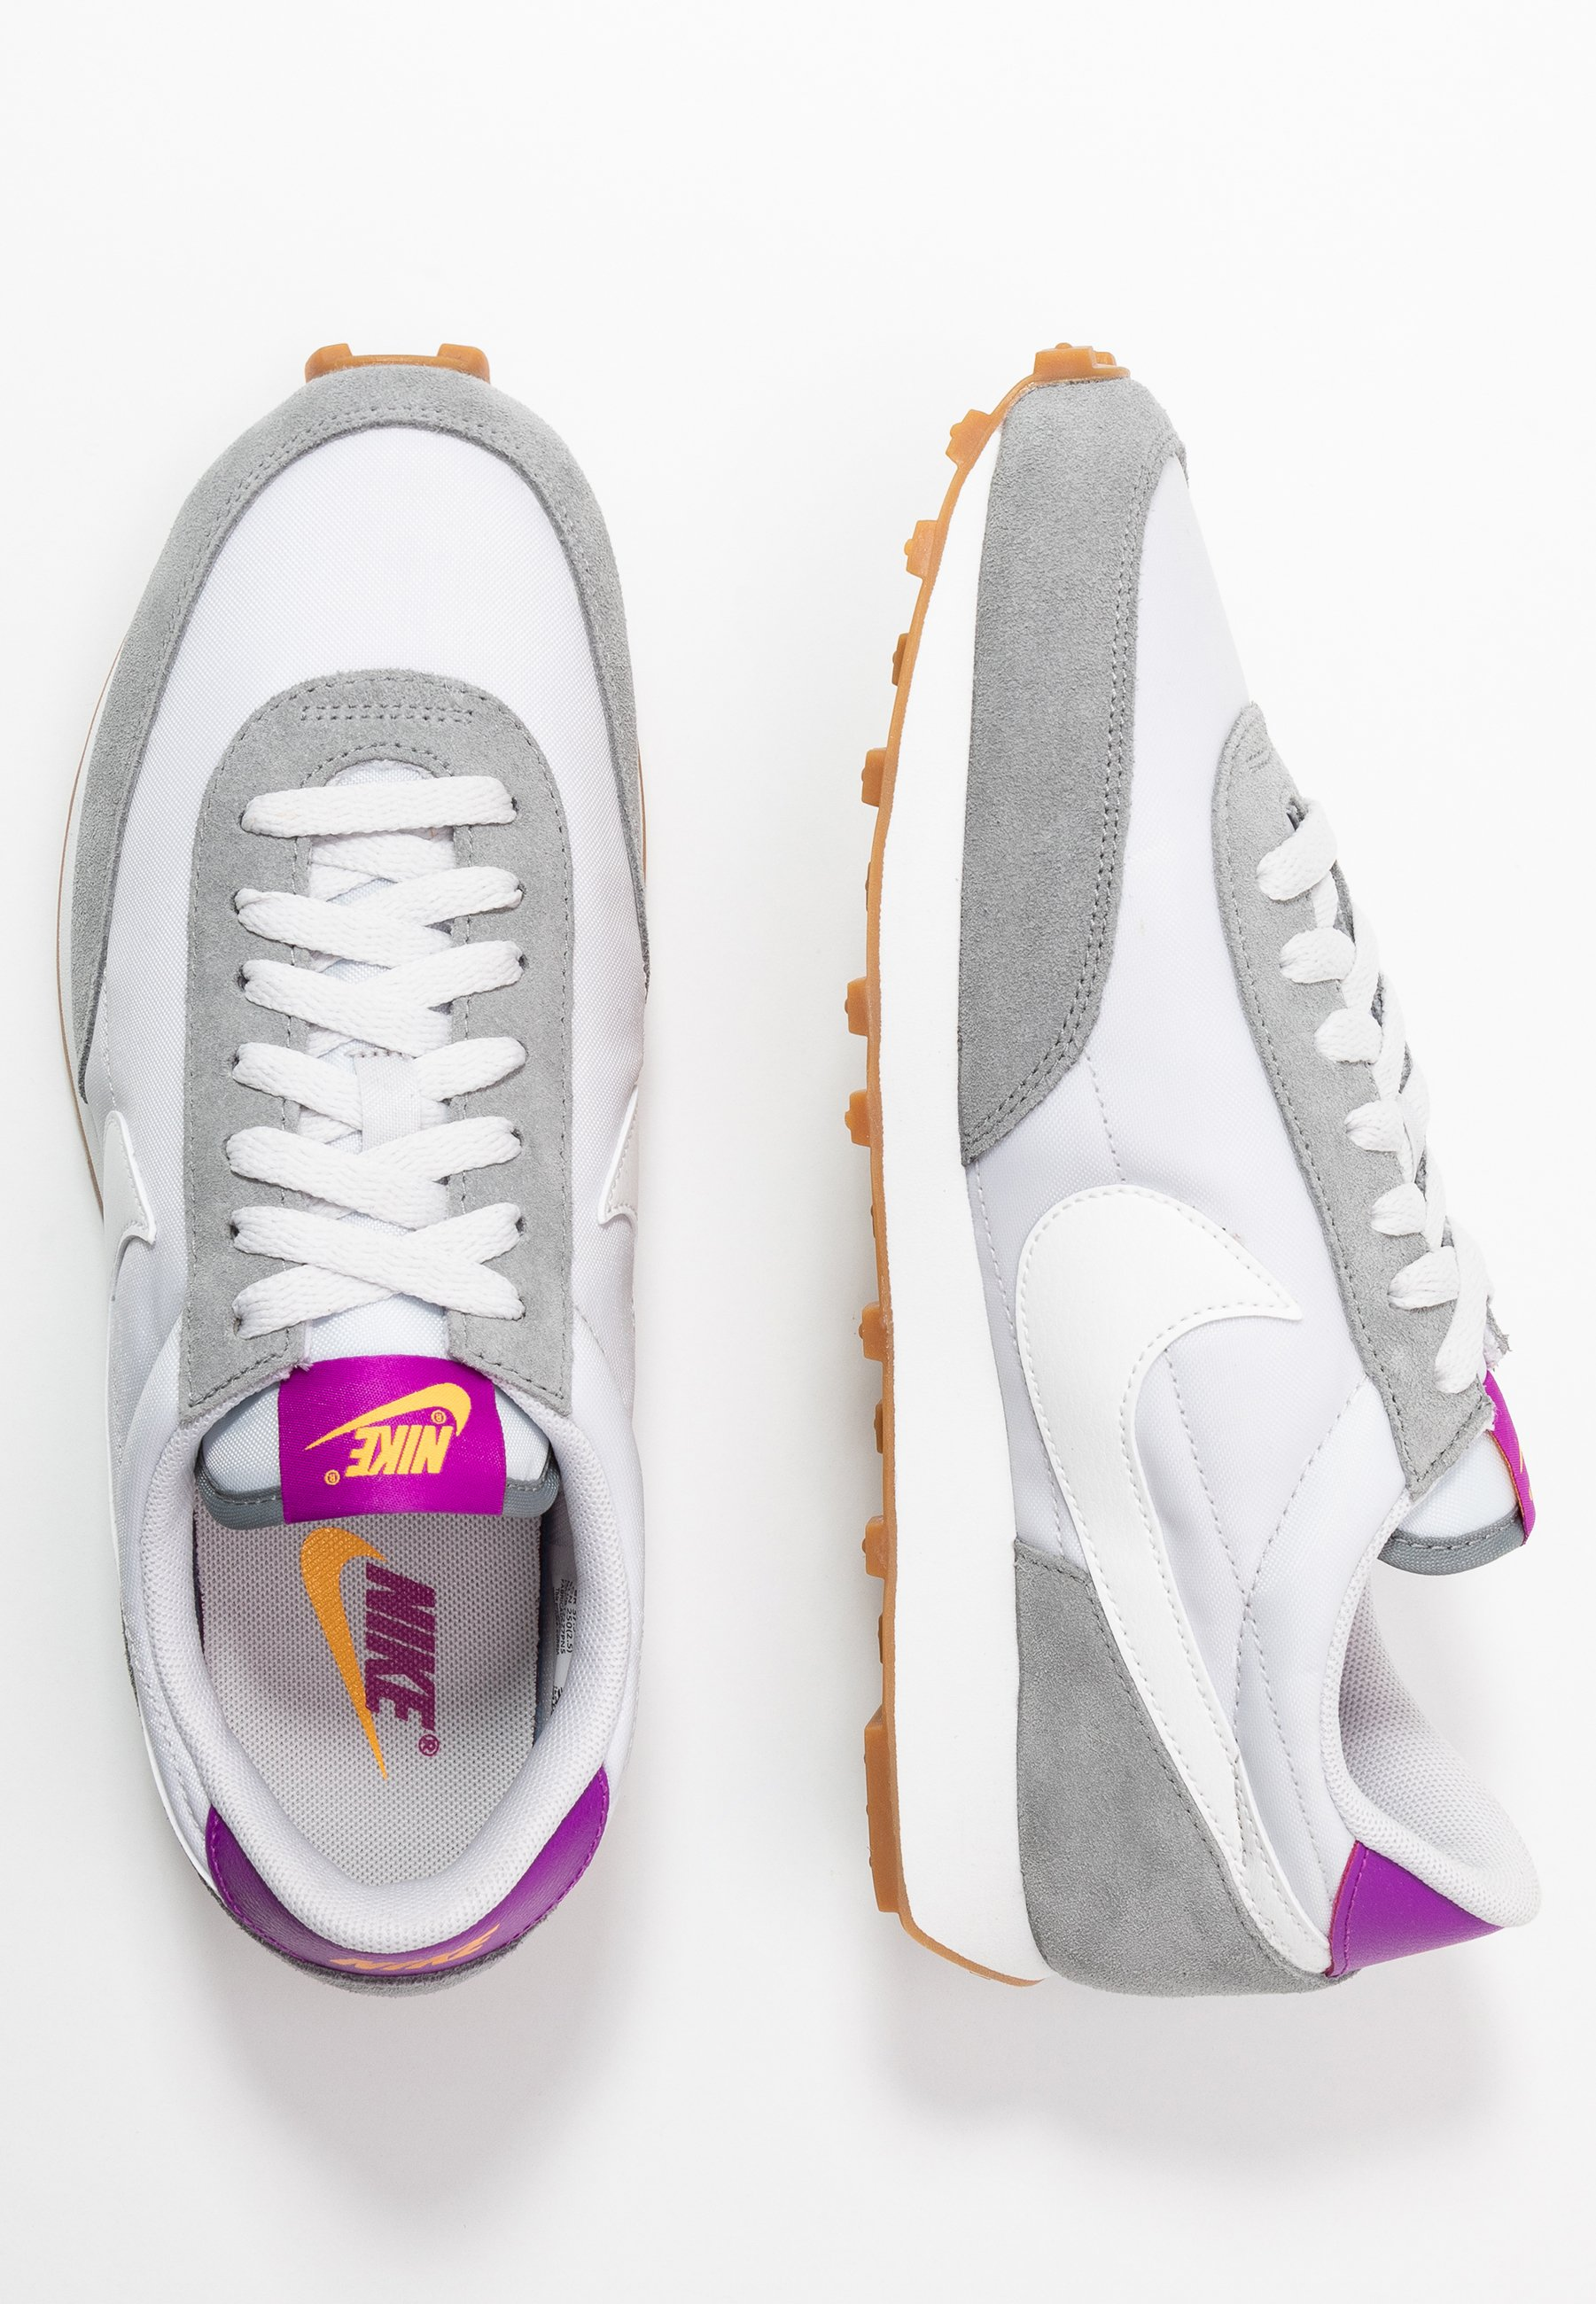 DAYBREAK Sneakers laag particle greysummit whitevast greyvivid purplelaser orangemedium brown